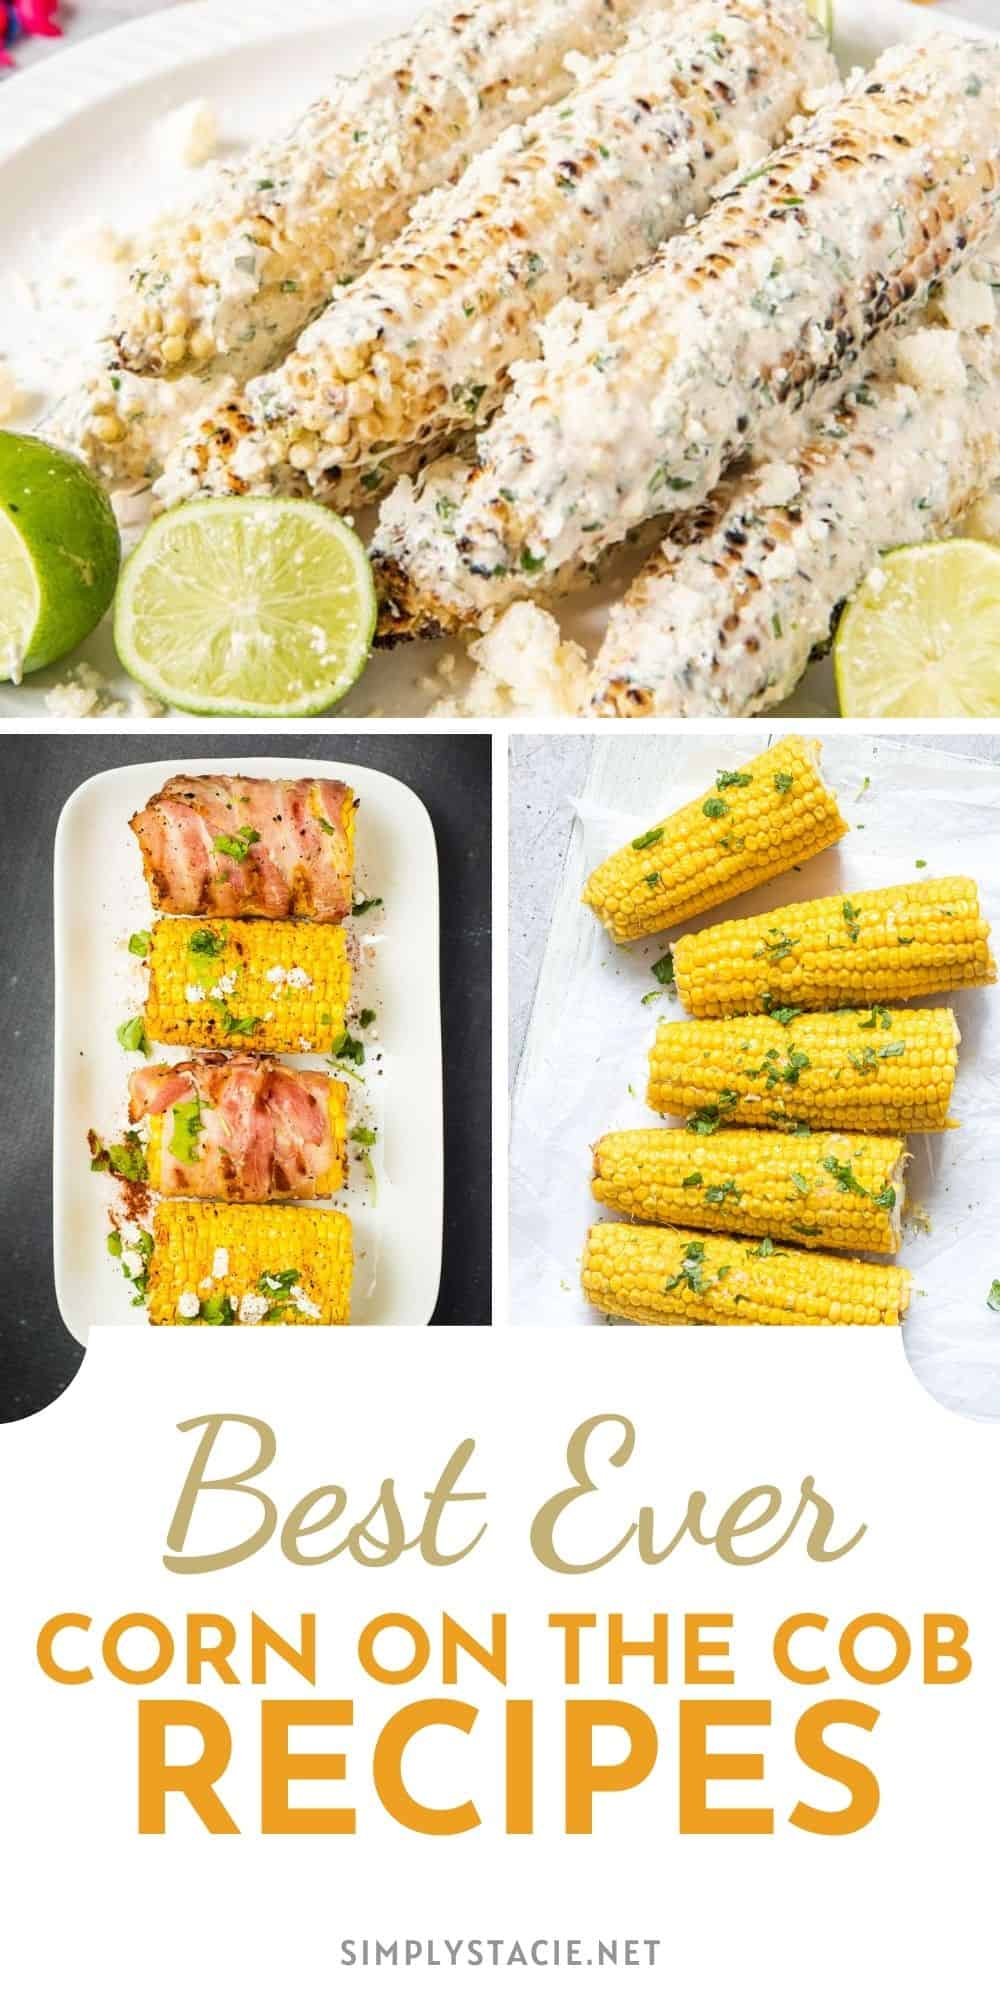 Corn on the Cob Recipes to Eat this Summer - The perfect side to any summer meal!